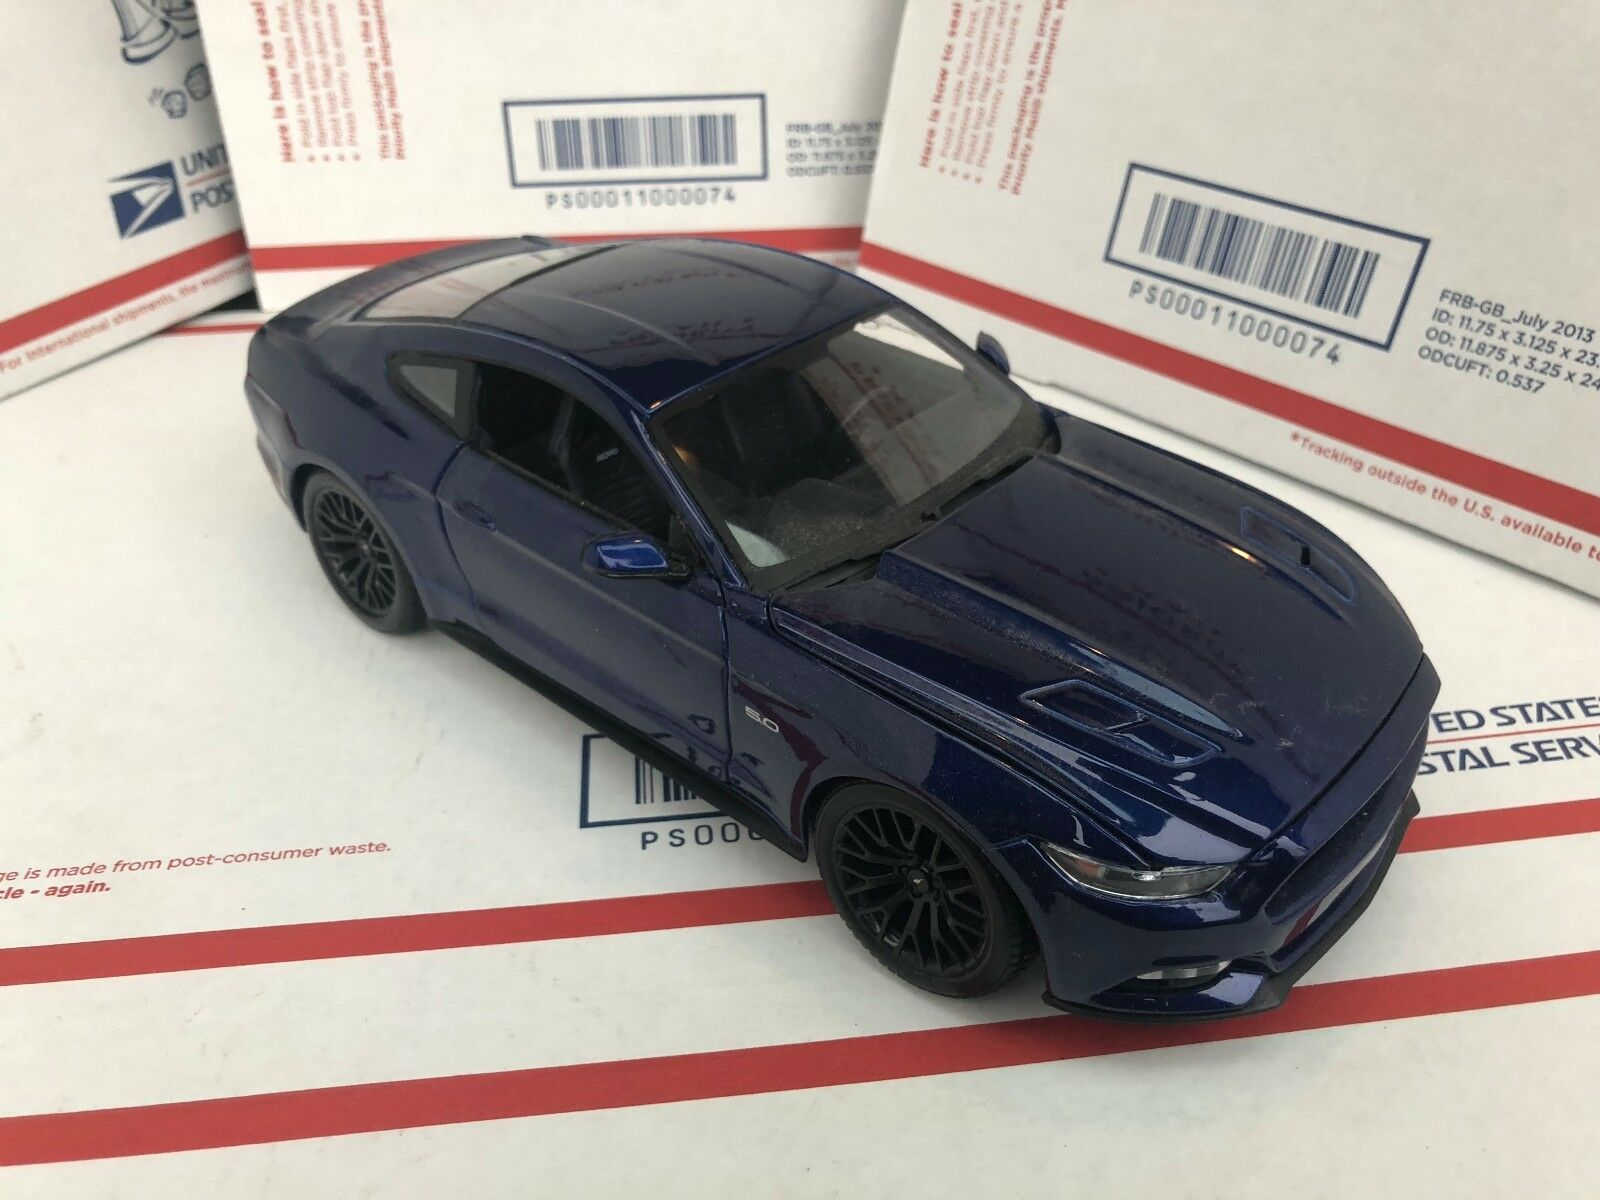 2015 FORD Mustang GT Coupe 1 18 Scale Maisto Diecast Model Blau